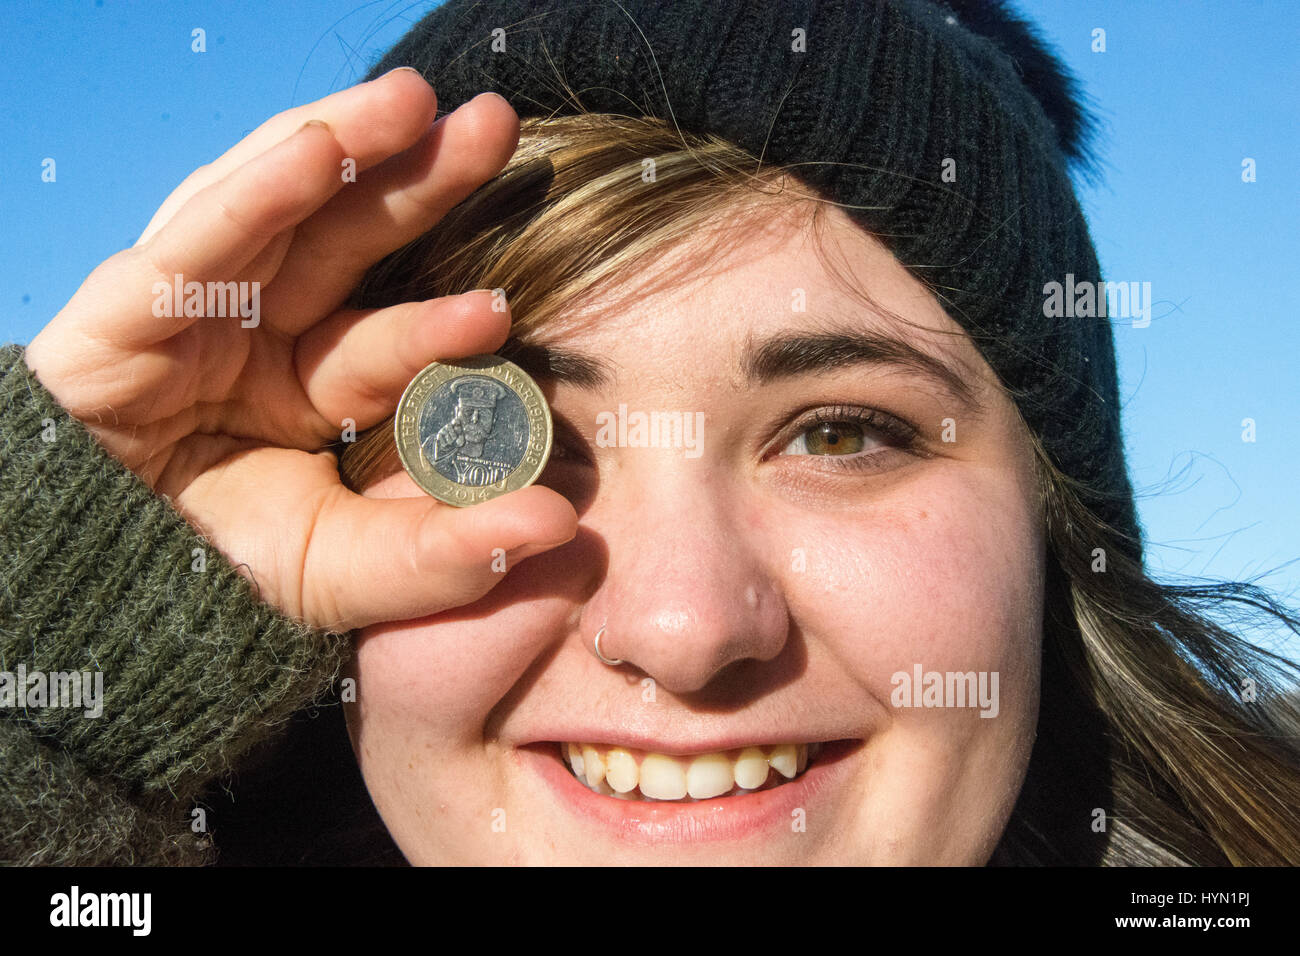 Wales, United Kingdom. February 23 2017. Kern Bridges aged 22 from Penarth is a Photojournalism student at the university - Stock Image